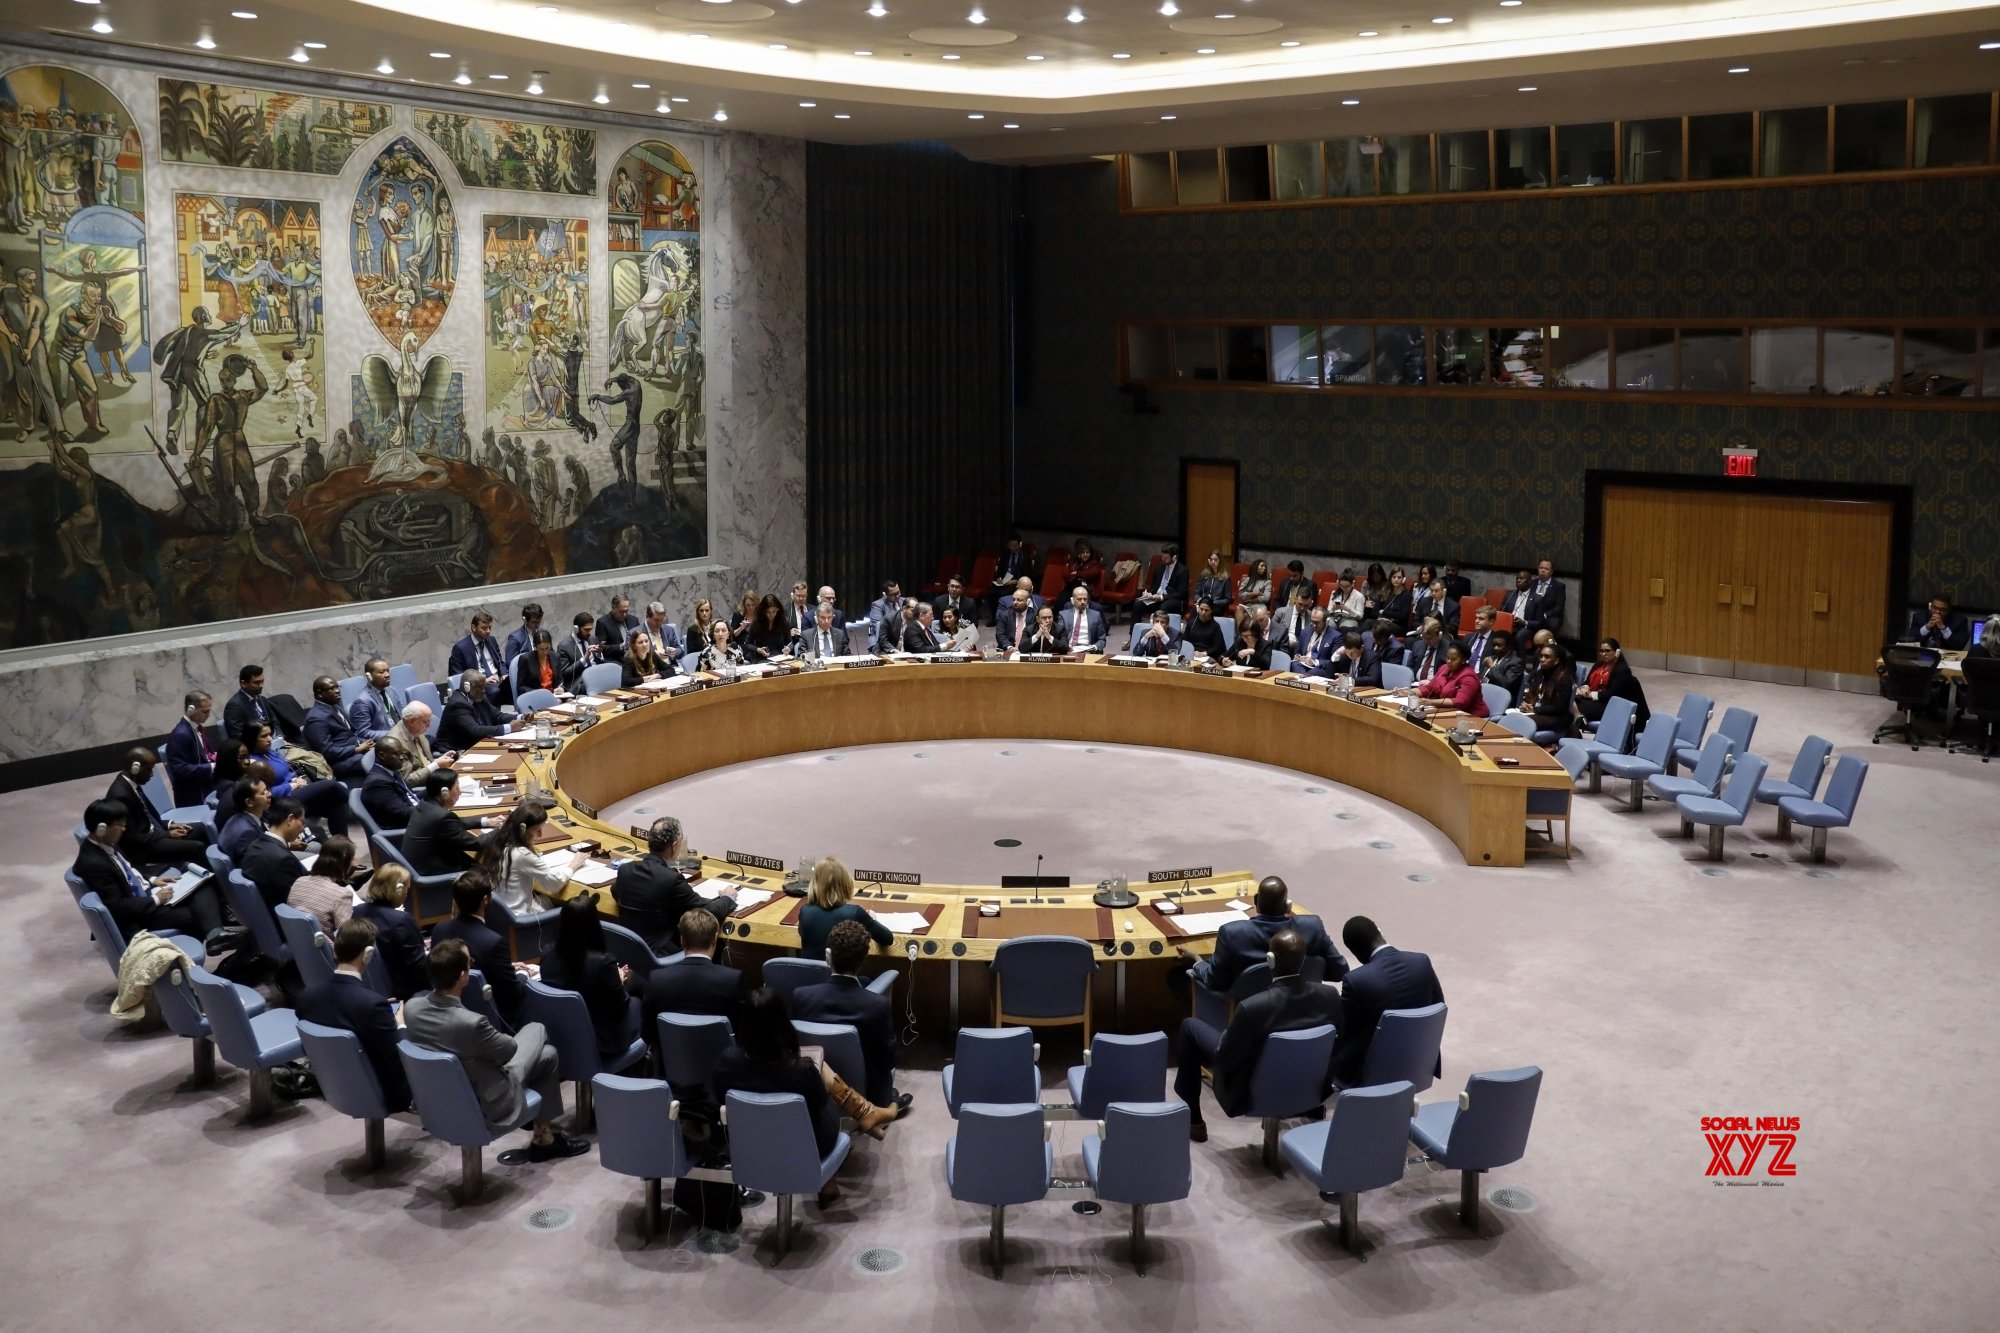 UN - SECURITY COUNCIL - SUDAN AND SOUTH SUDAN - MEETING #Gallery